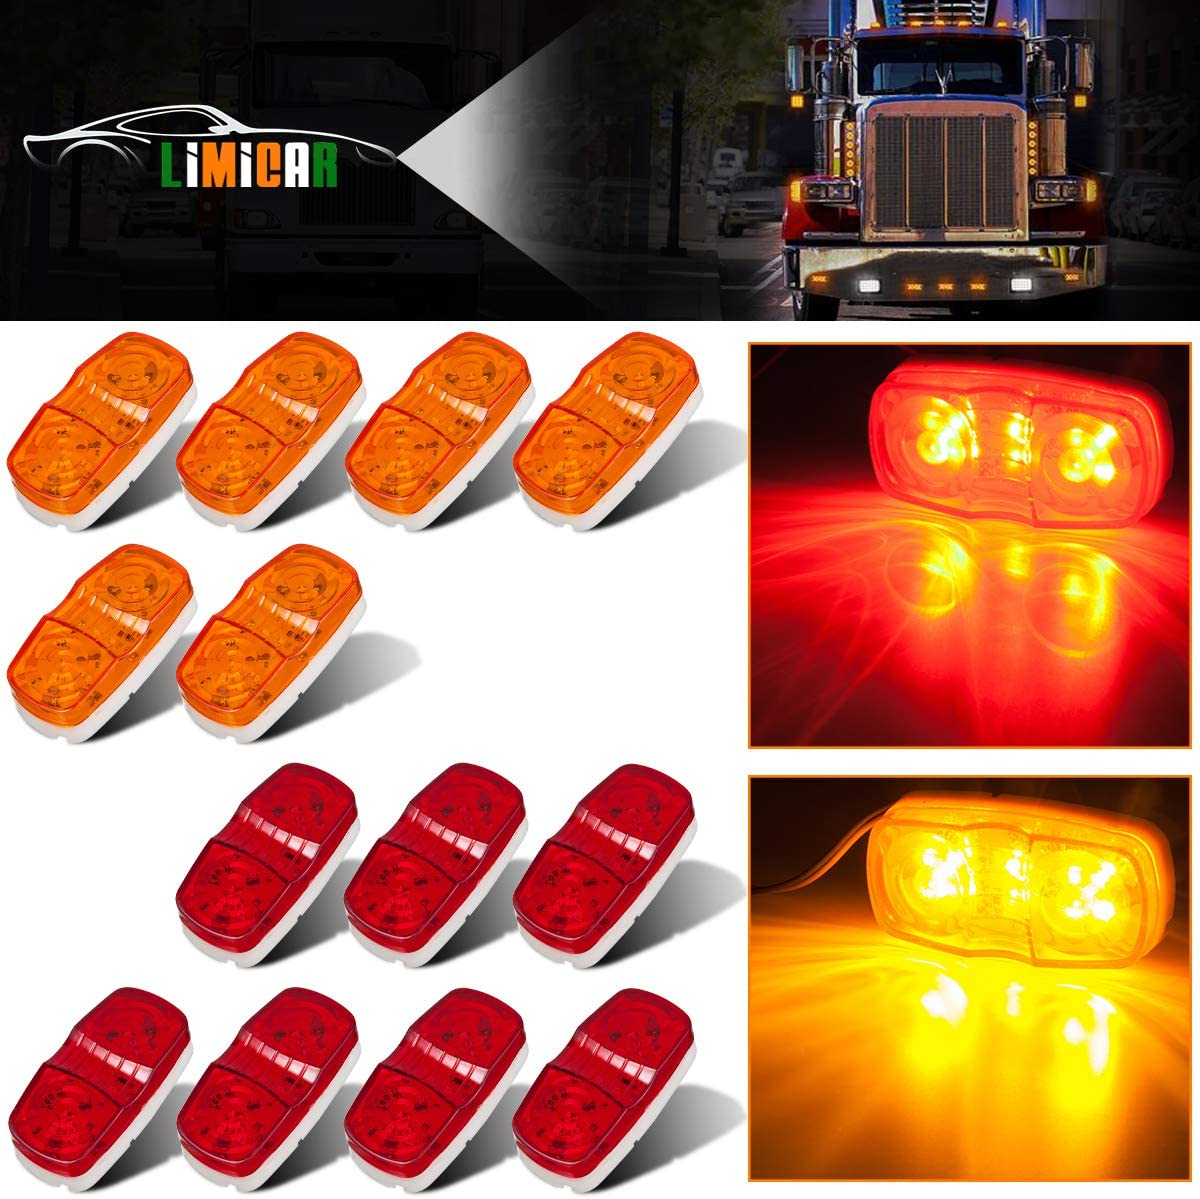 yellow JIUY 1* Best Promotion 12V Waterproof 3LED Beads Car Trailer Truck Edge Side Marker Clearance Light F5 Straight Bulb Warning Lamp